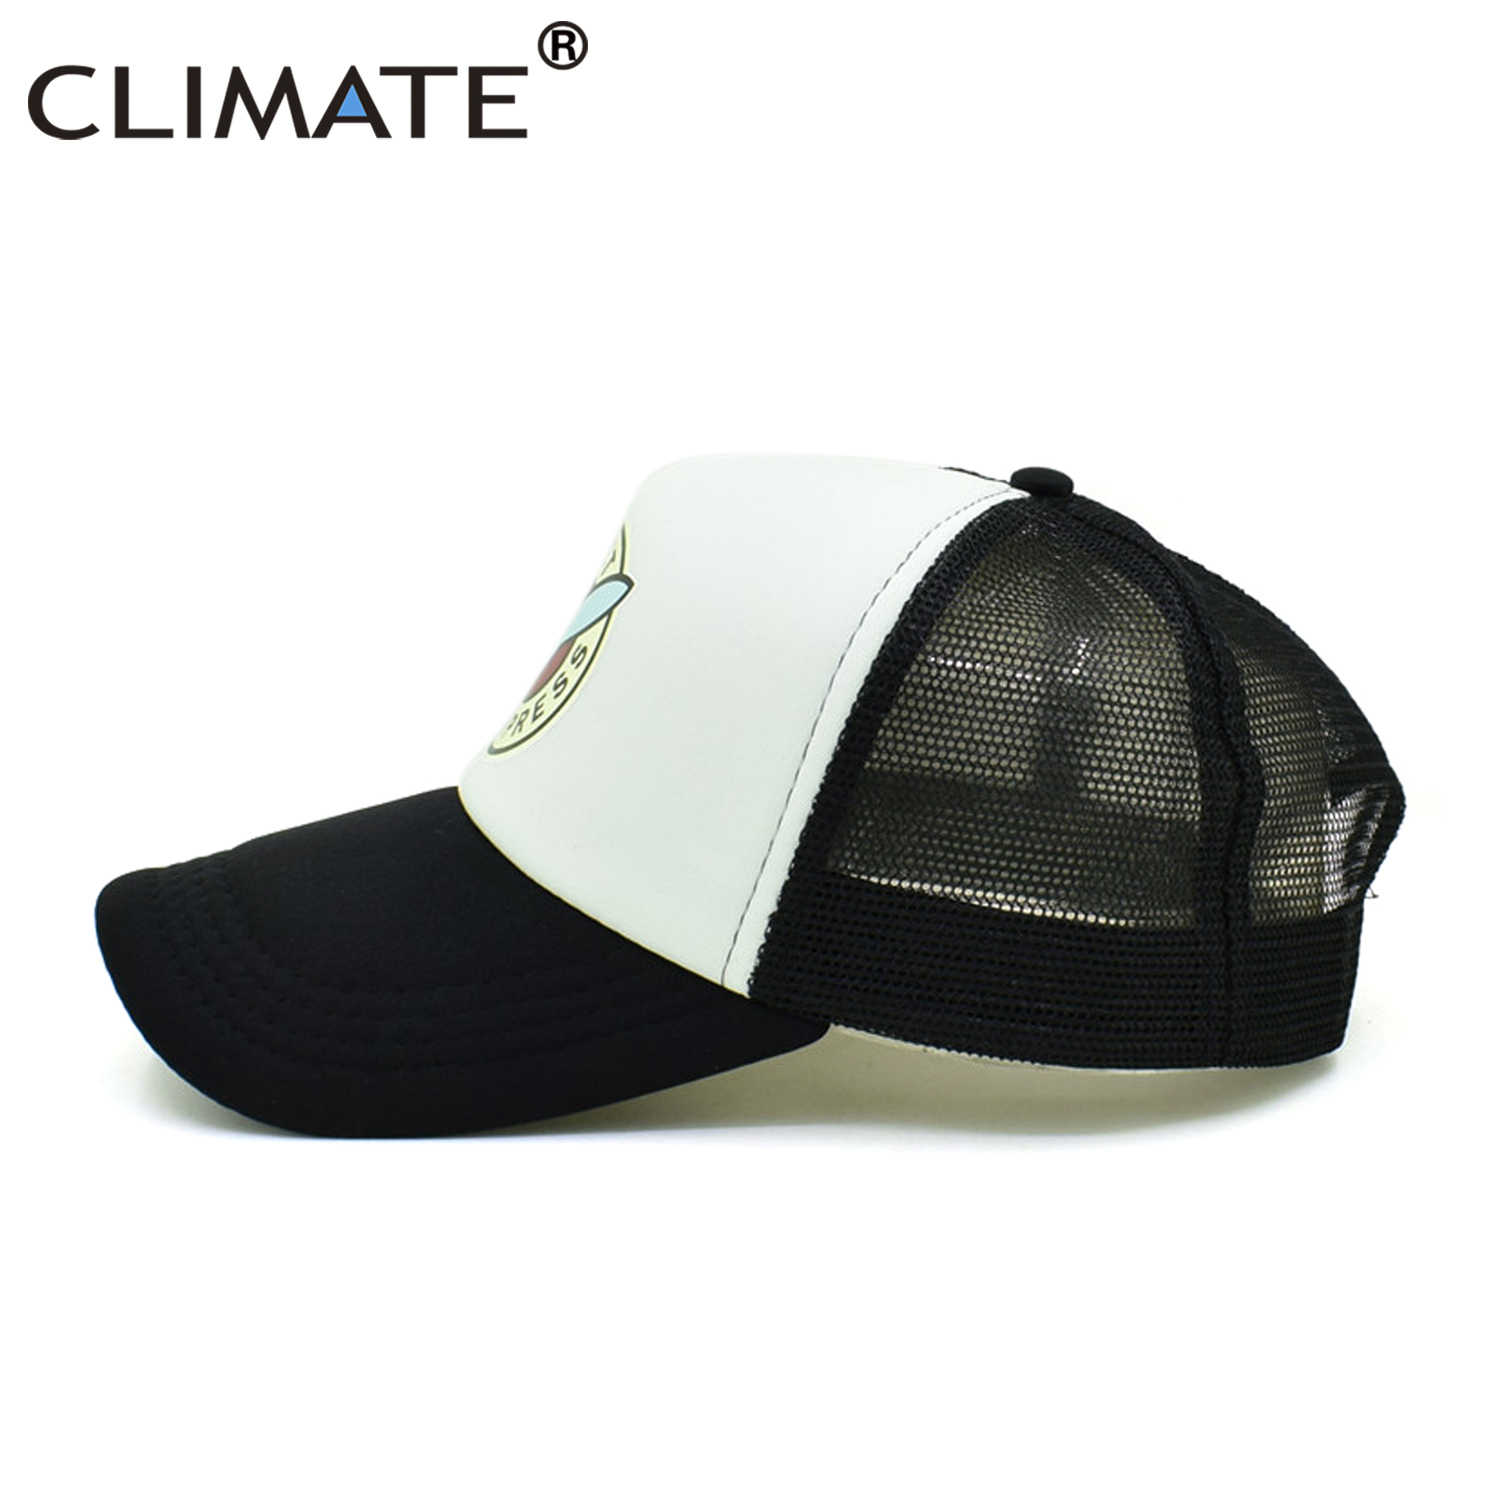 ef4ed7cadc4 ... CLIMATE Planet Express Trucker Caps Hat Funny Mesh Caps Spacex The  Expanse Rocket Spaceship Cool Summer ...